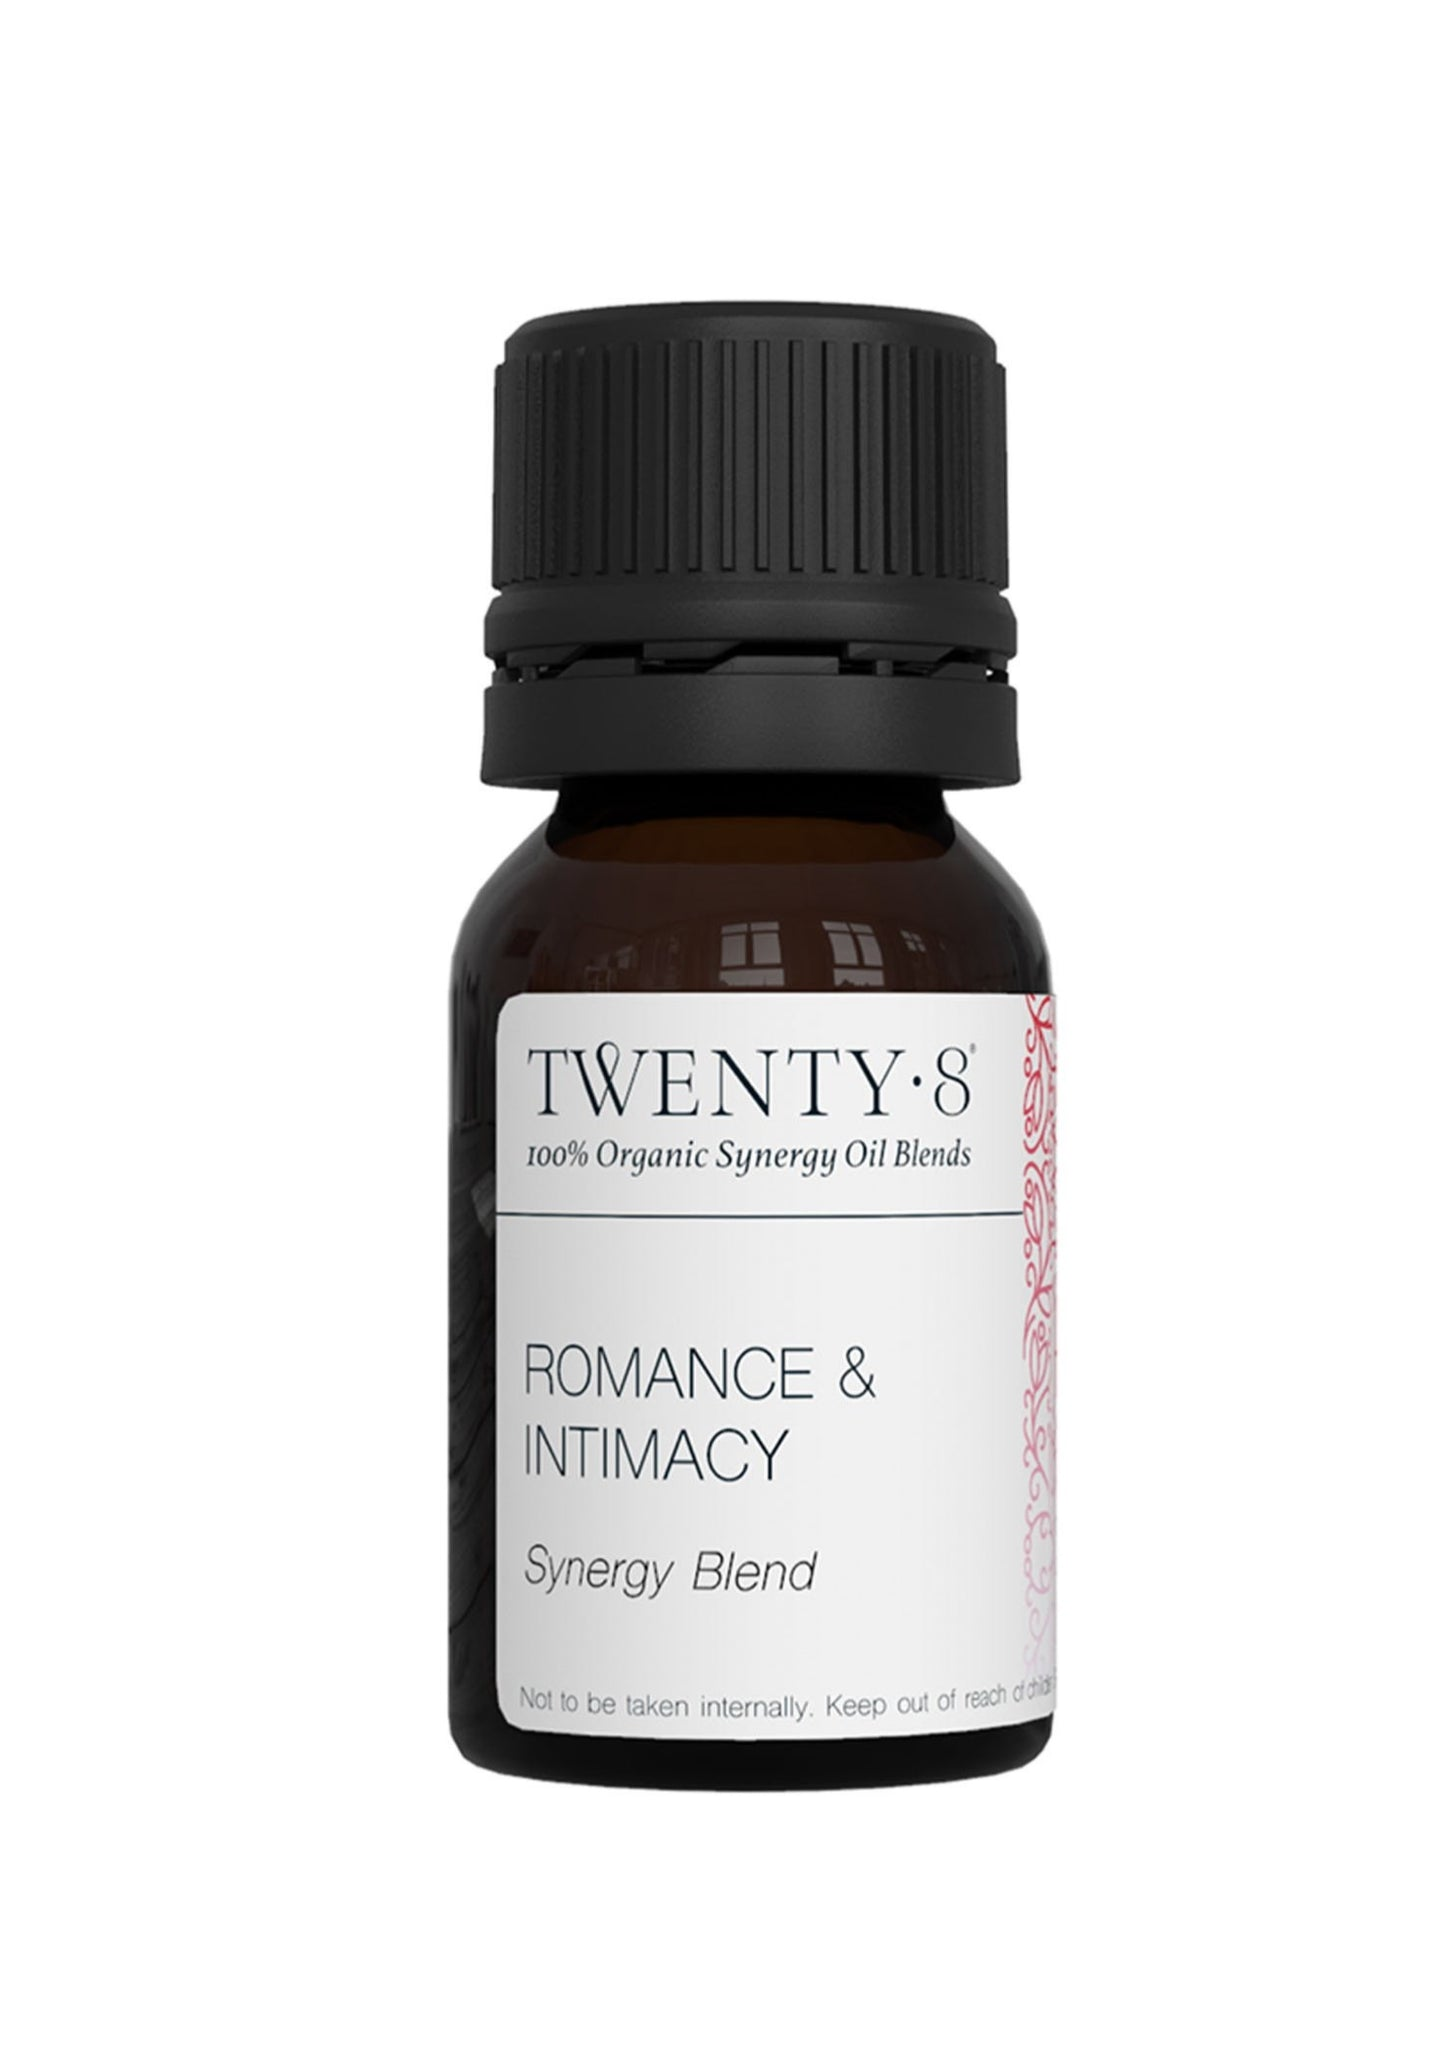 Romance & Intimacy - Synergy Blend